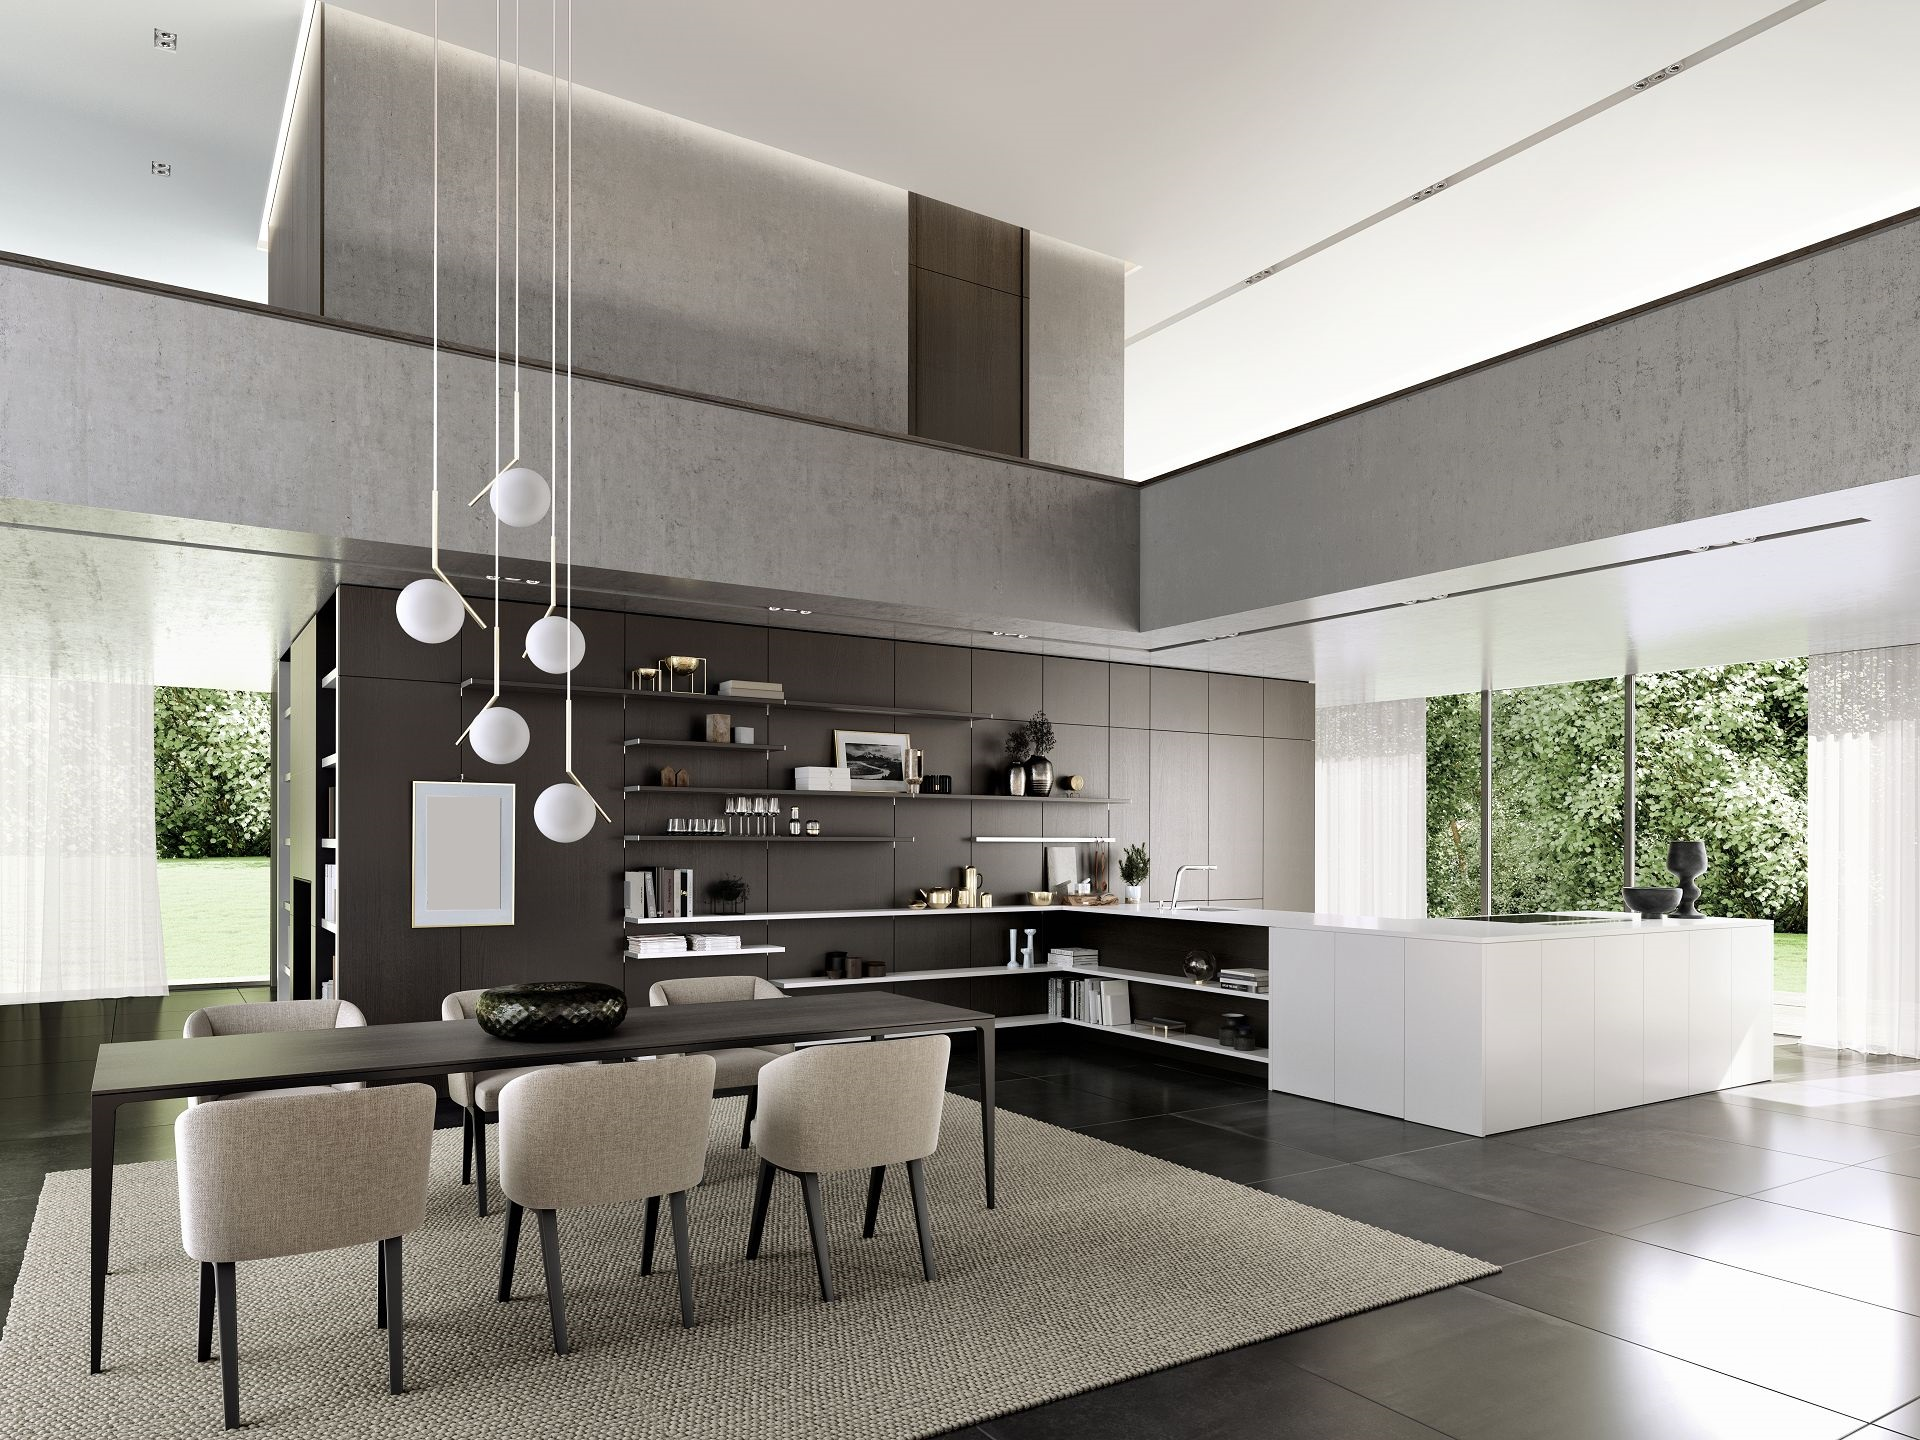 siematic floatingspaces cuisine s jour associ s avec. Black Bedroom Furniture Sets. Home Design Ideas